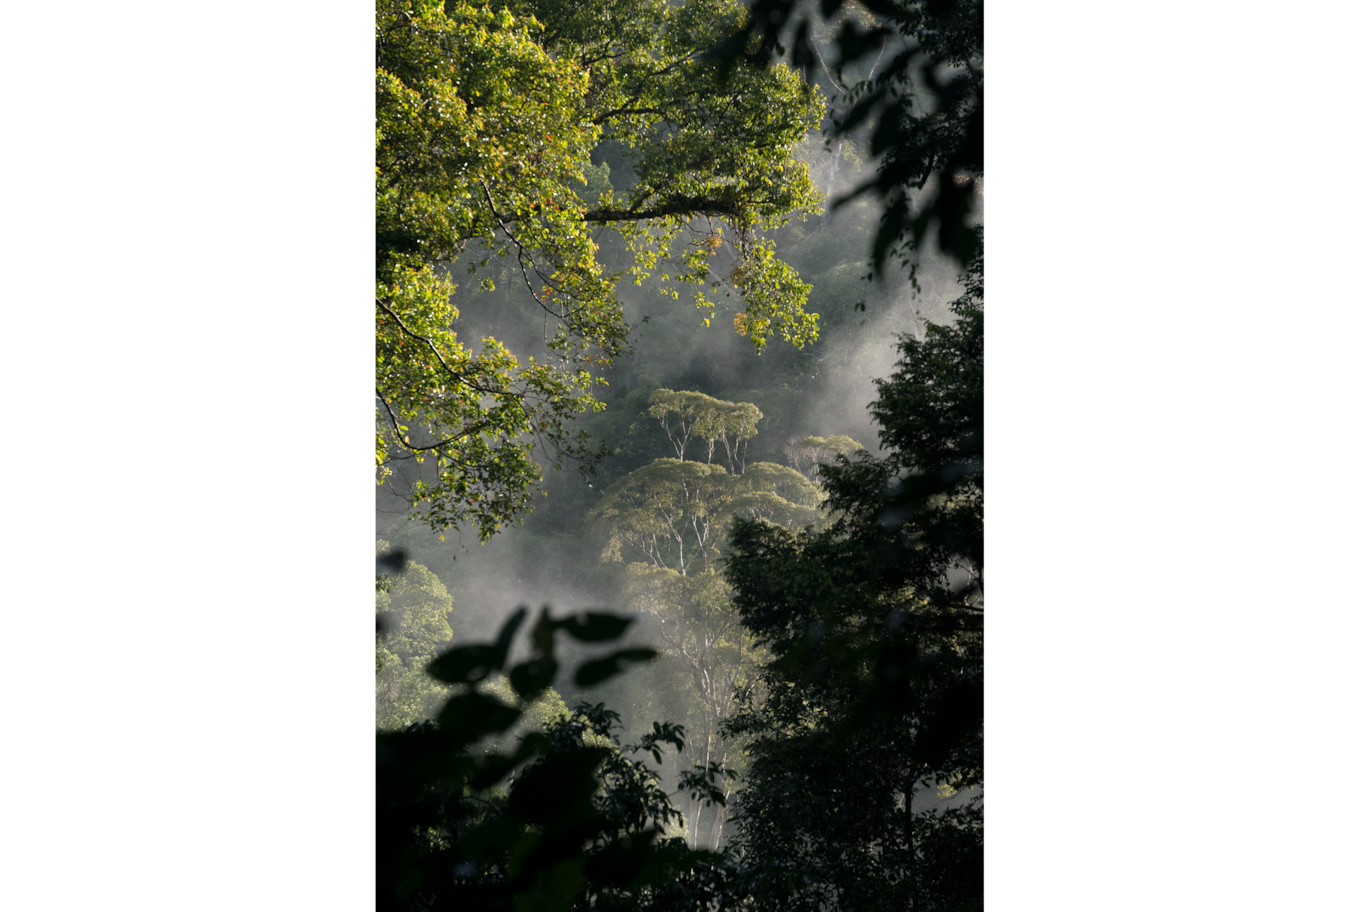 Tomas Wuethrich sony alpha 9 jungle mists weaving through trees lit with dappled sunlight